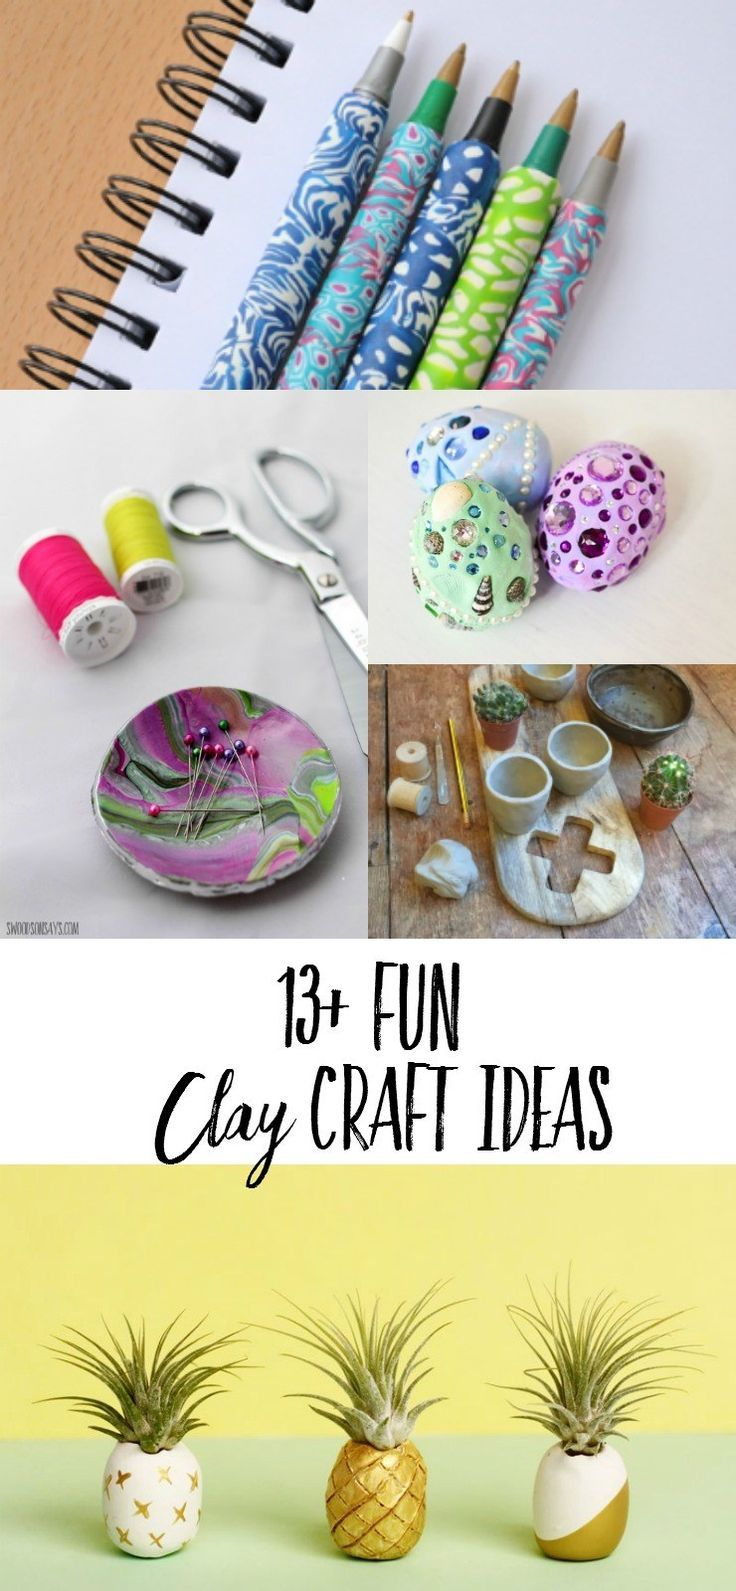 13 Fun Clay Craft Ideas To Make Share Your Craft Clay Crafts